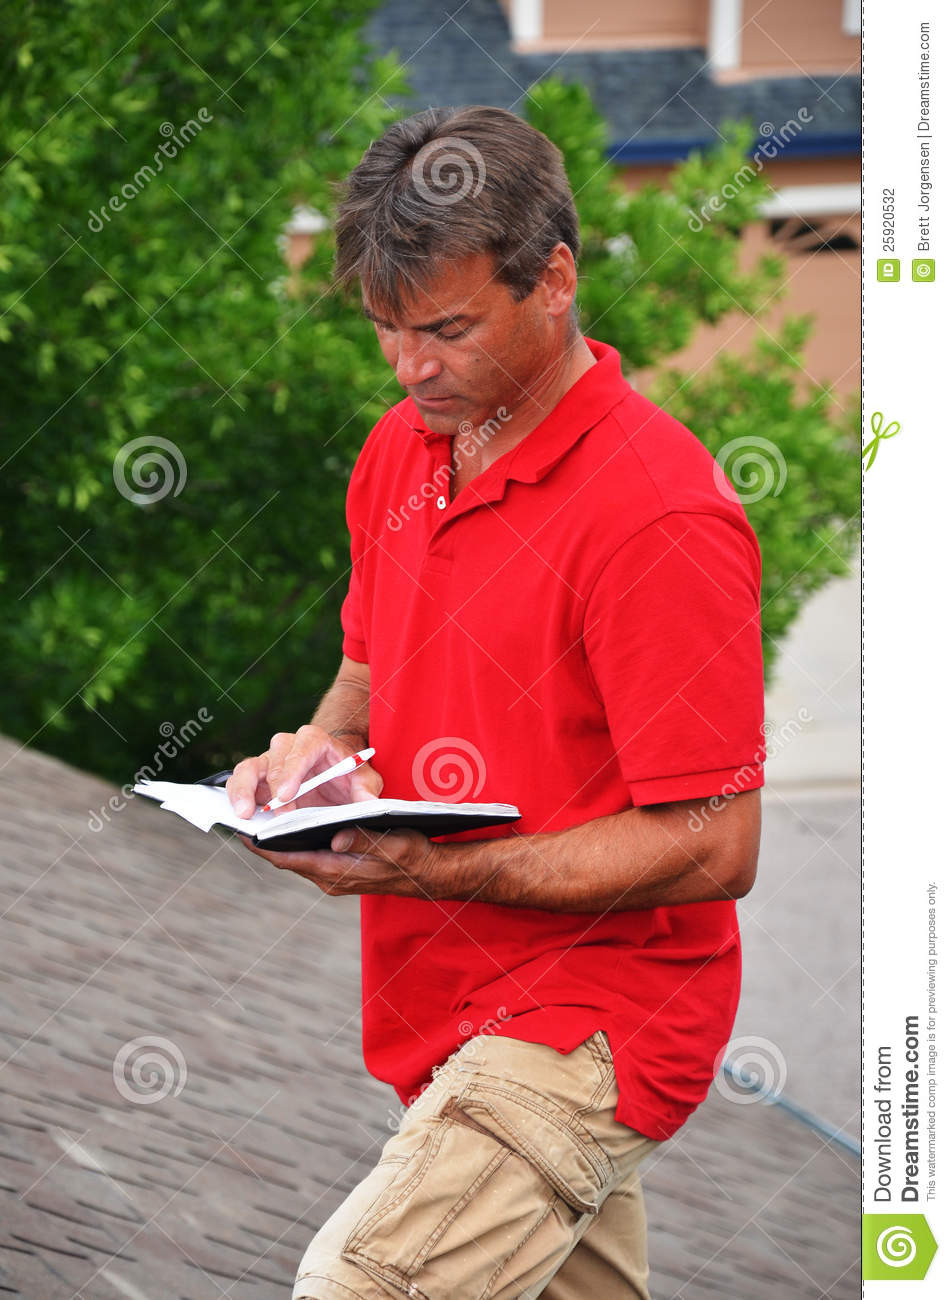 A Man With A Book On A Roof Stock Photo - Image of home